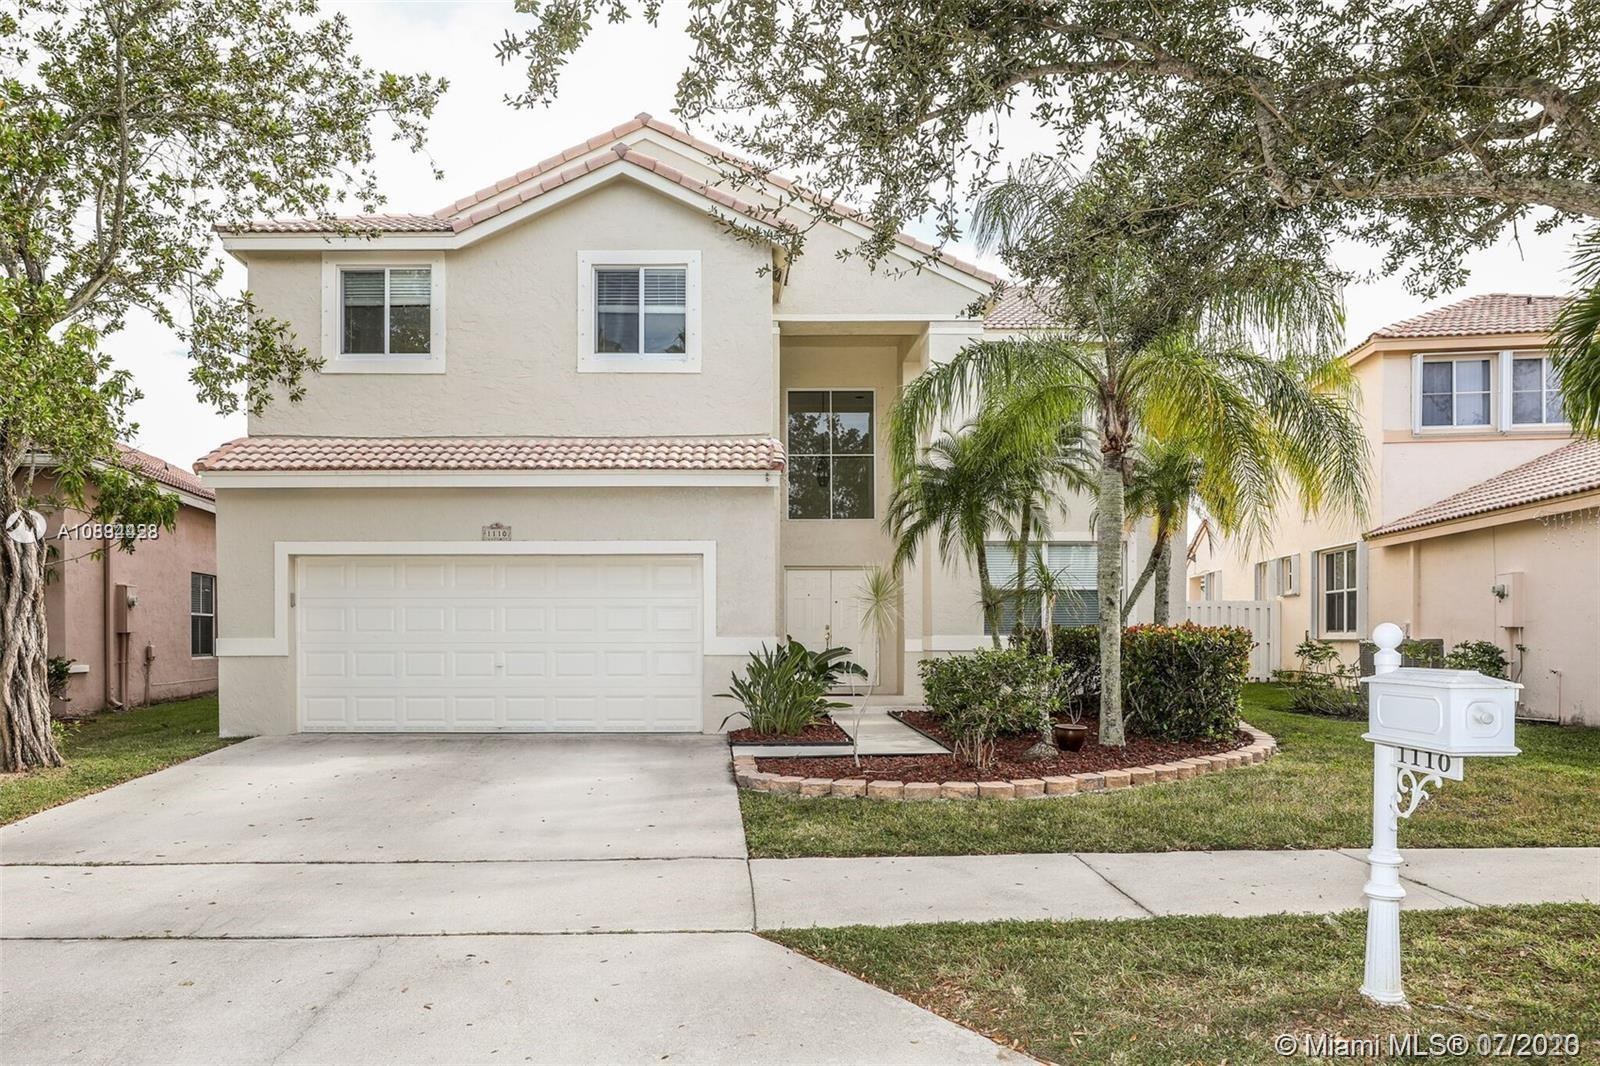 BEAUTIFUL AND UPDATED LARGE 4 BEDROOM 2.5 BATH SINGLE FAMILY HOME IN GATED FALLS COMMUNITY OF WESTON. HOME FEATURES UPDATED KITCHEN, BATHS, MASTER BEDROOM HAS ADDITIONAL SITTING AREA/OFFICE. HURRICANE IMPACT WINDOWS. A+ RATED SCHOOLS, LOCATED NEAR SHOPPING AND MAJOR HWYS. A MUST SEE PROPERTY!